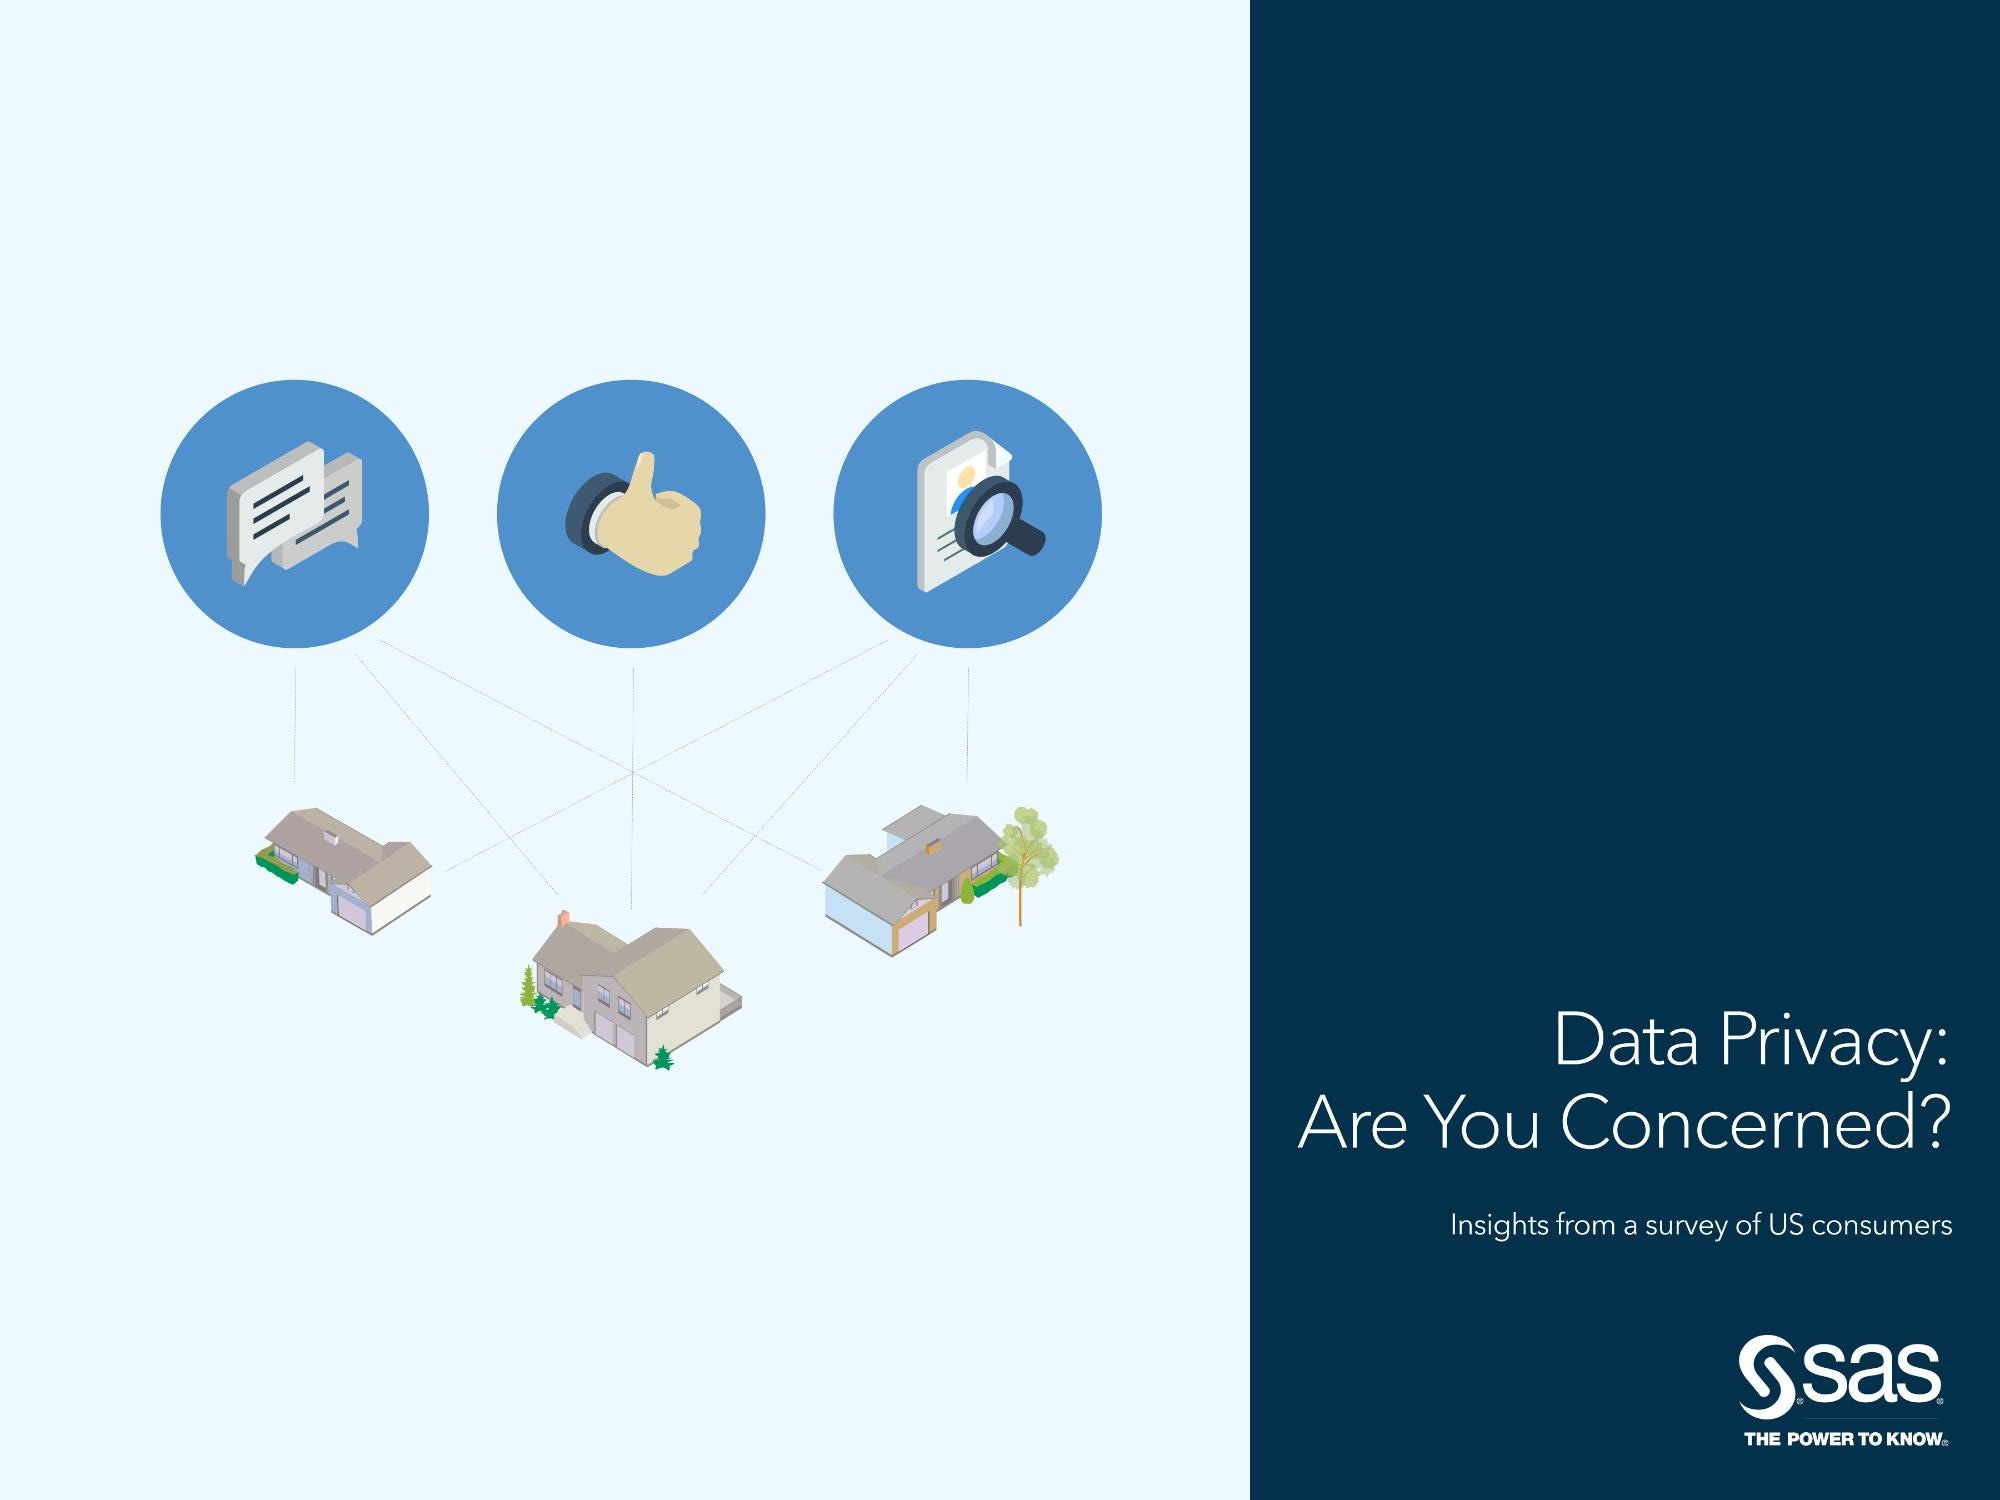 Data Privacy: Are You Concerned?